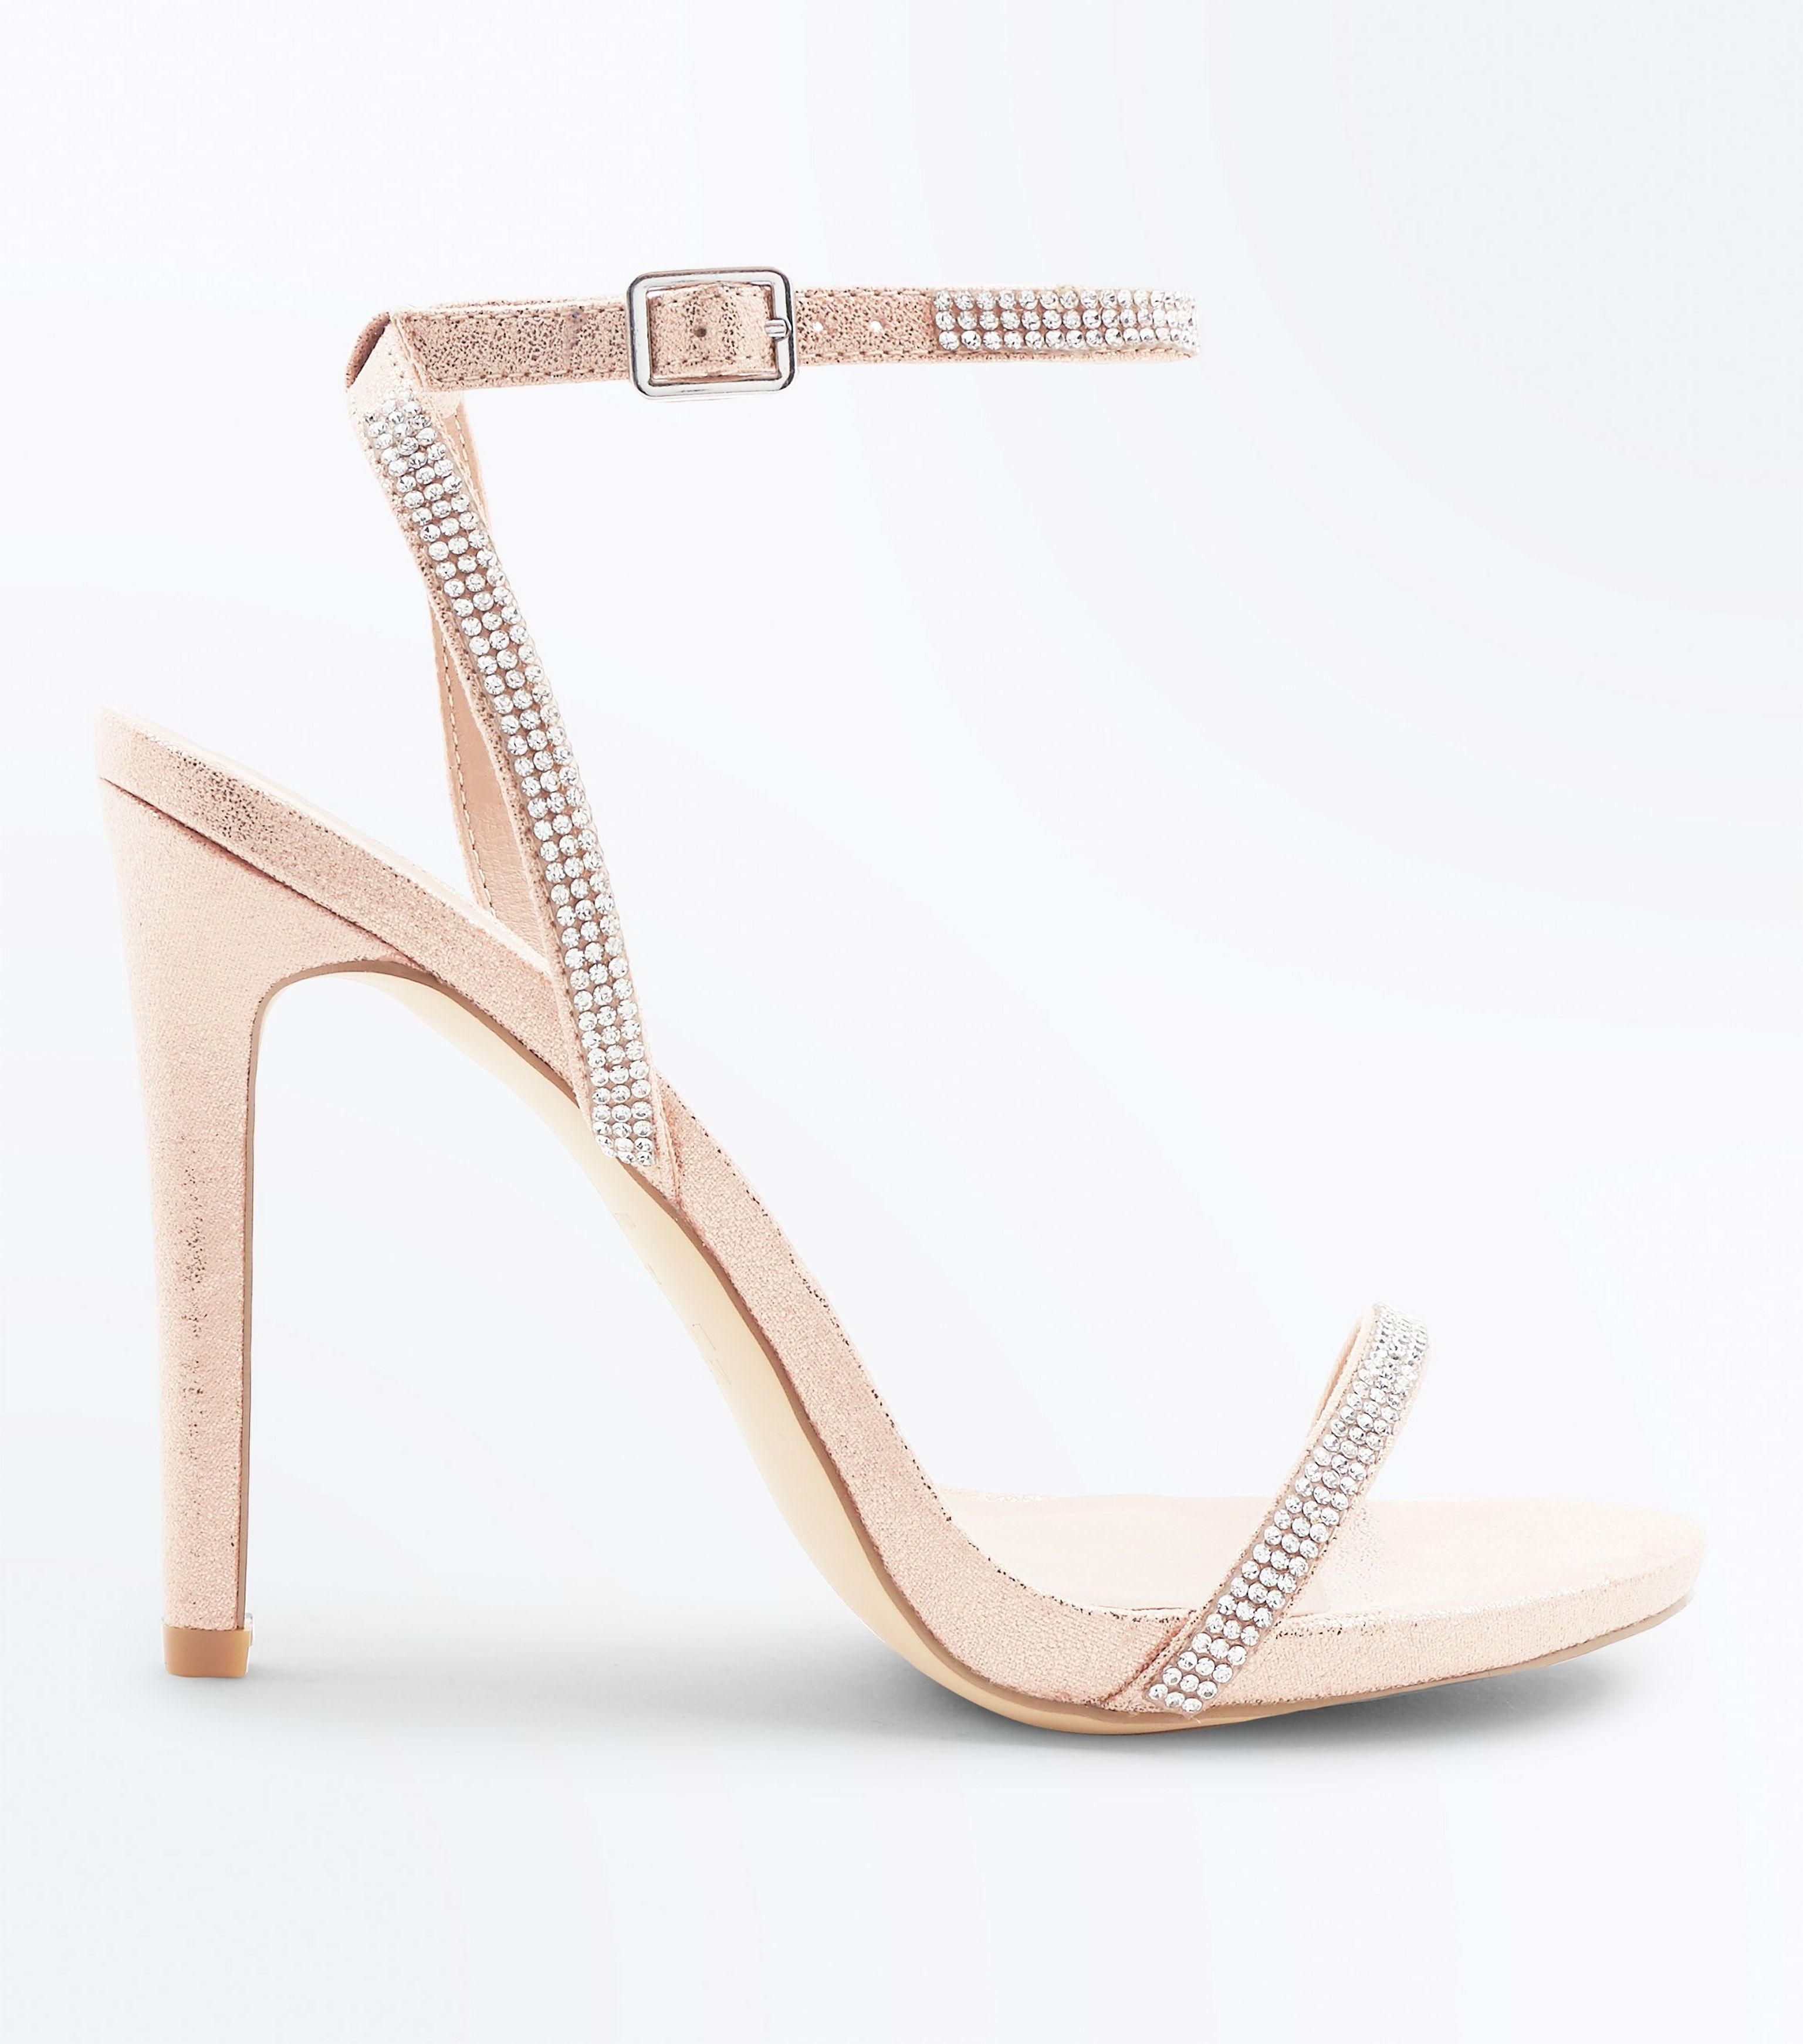 1decacd0ad5d New Look Rose Gold Diamante Embellished Heeled Sandals in Pink - Lyst